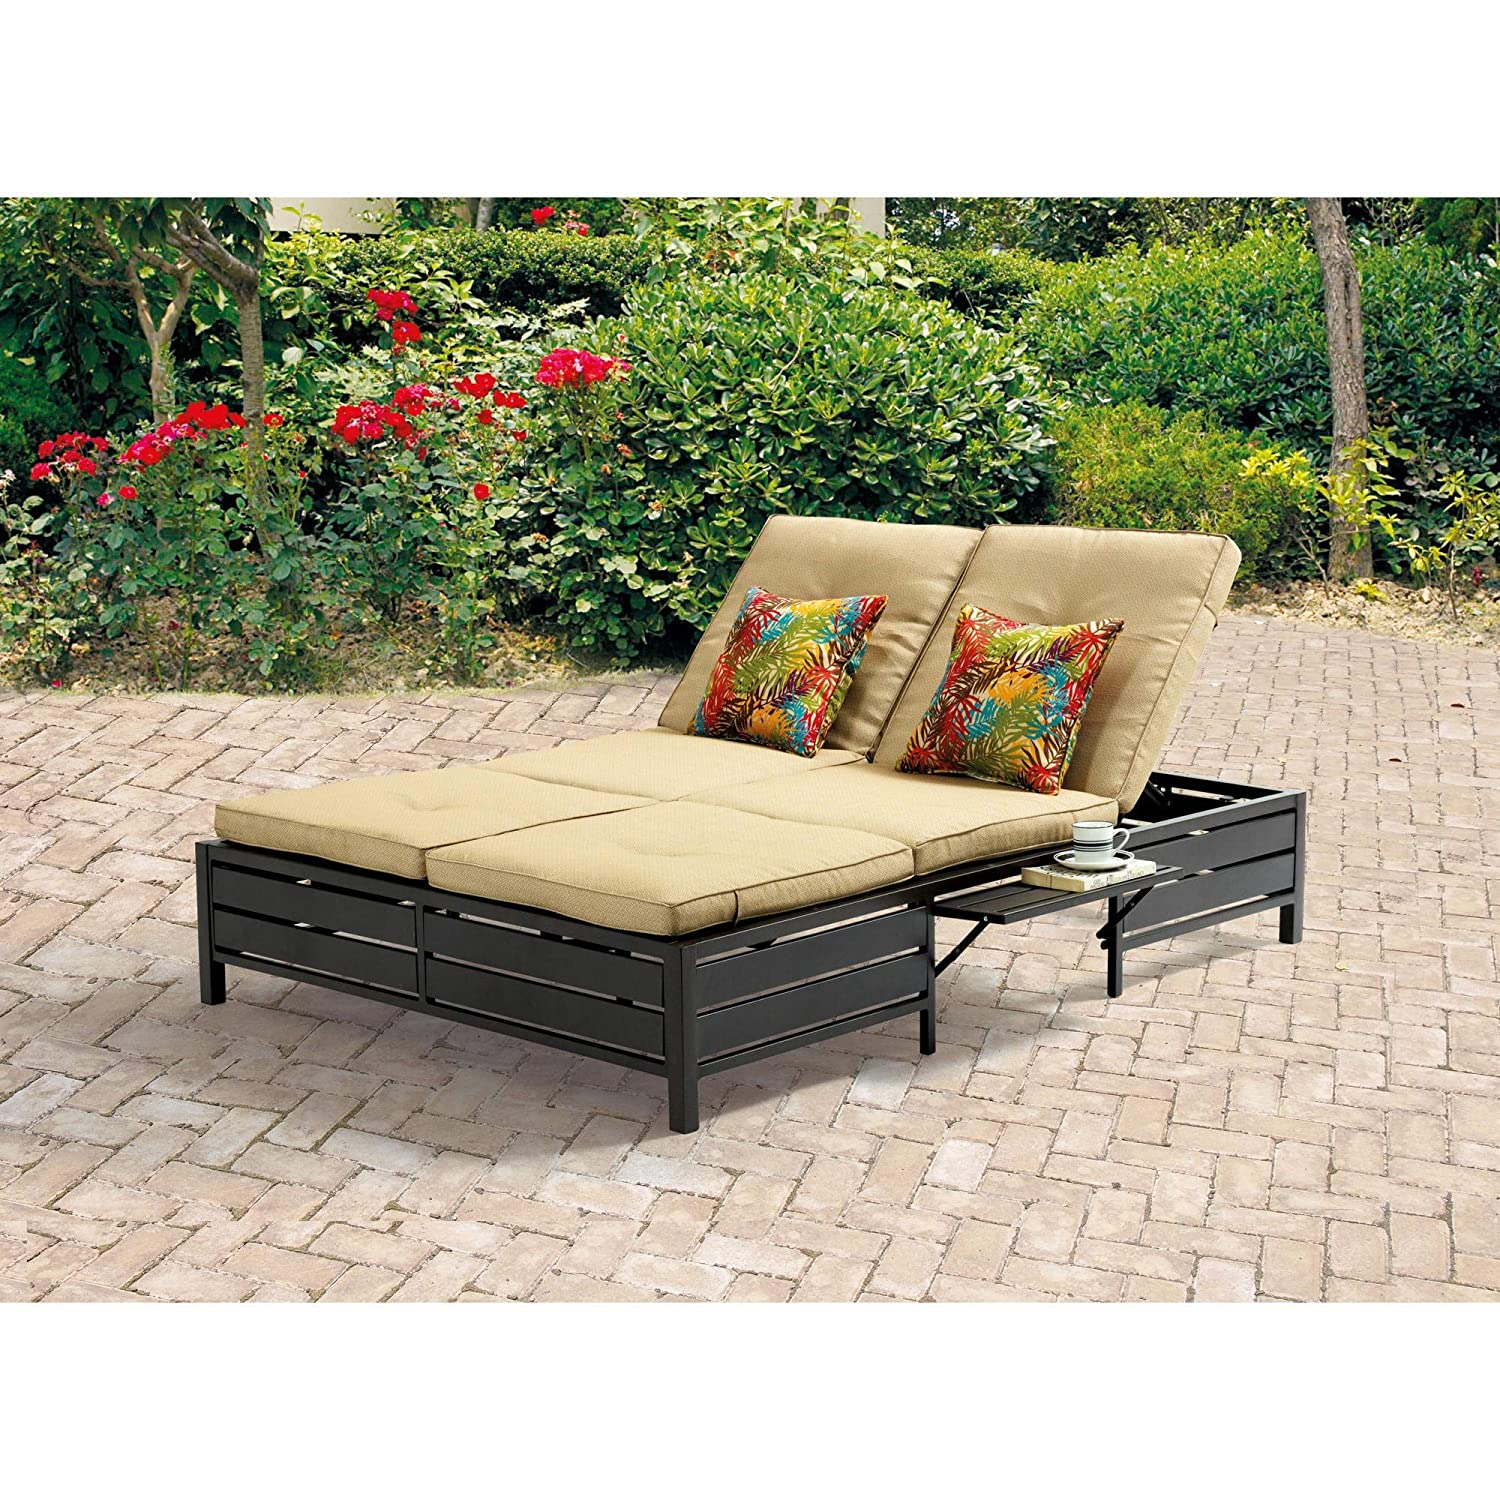 Double chaise lounger this red stripe outdoor chaise lounge is comfortable sun patio furniture guaranteed which can also be used in your garden